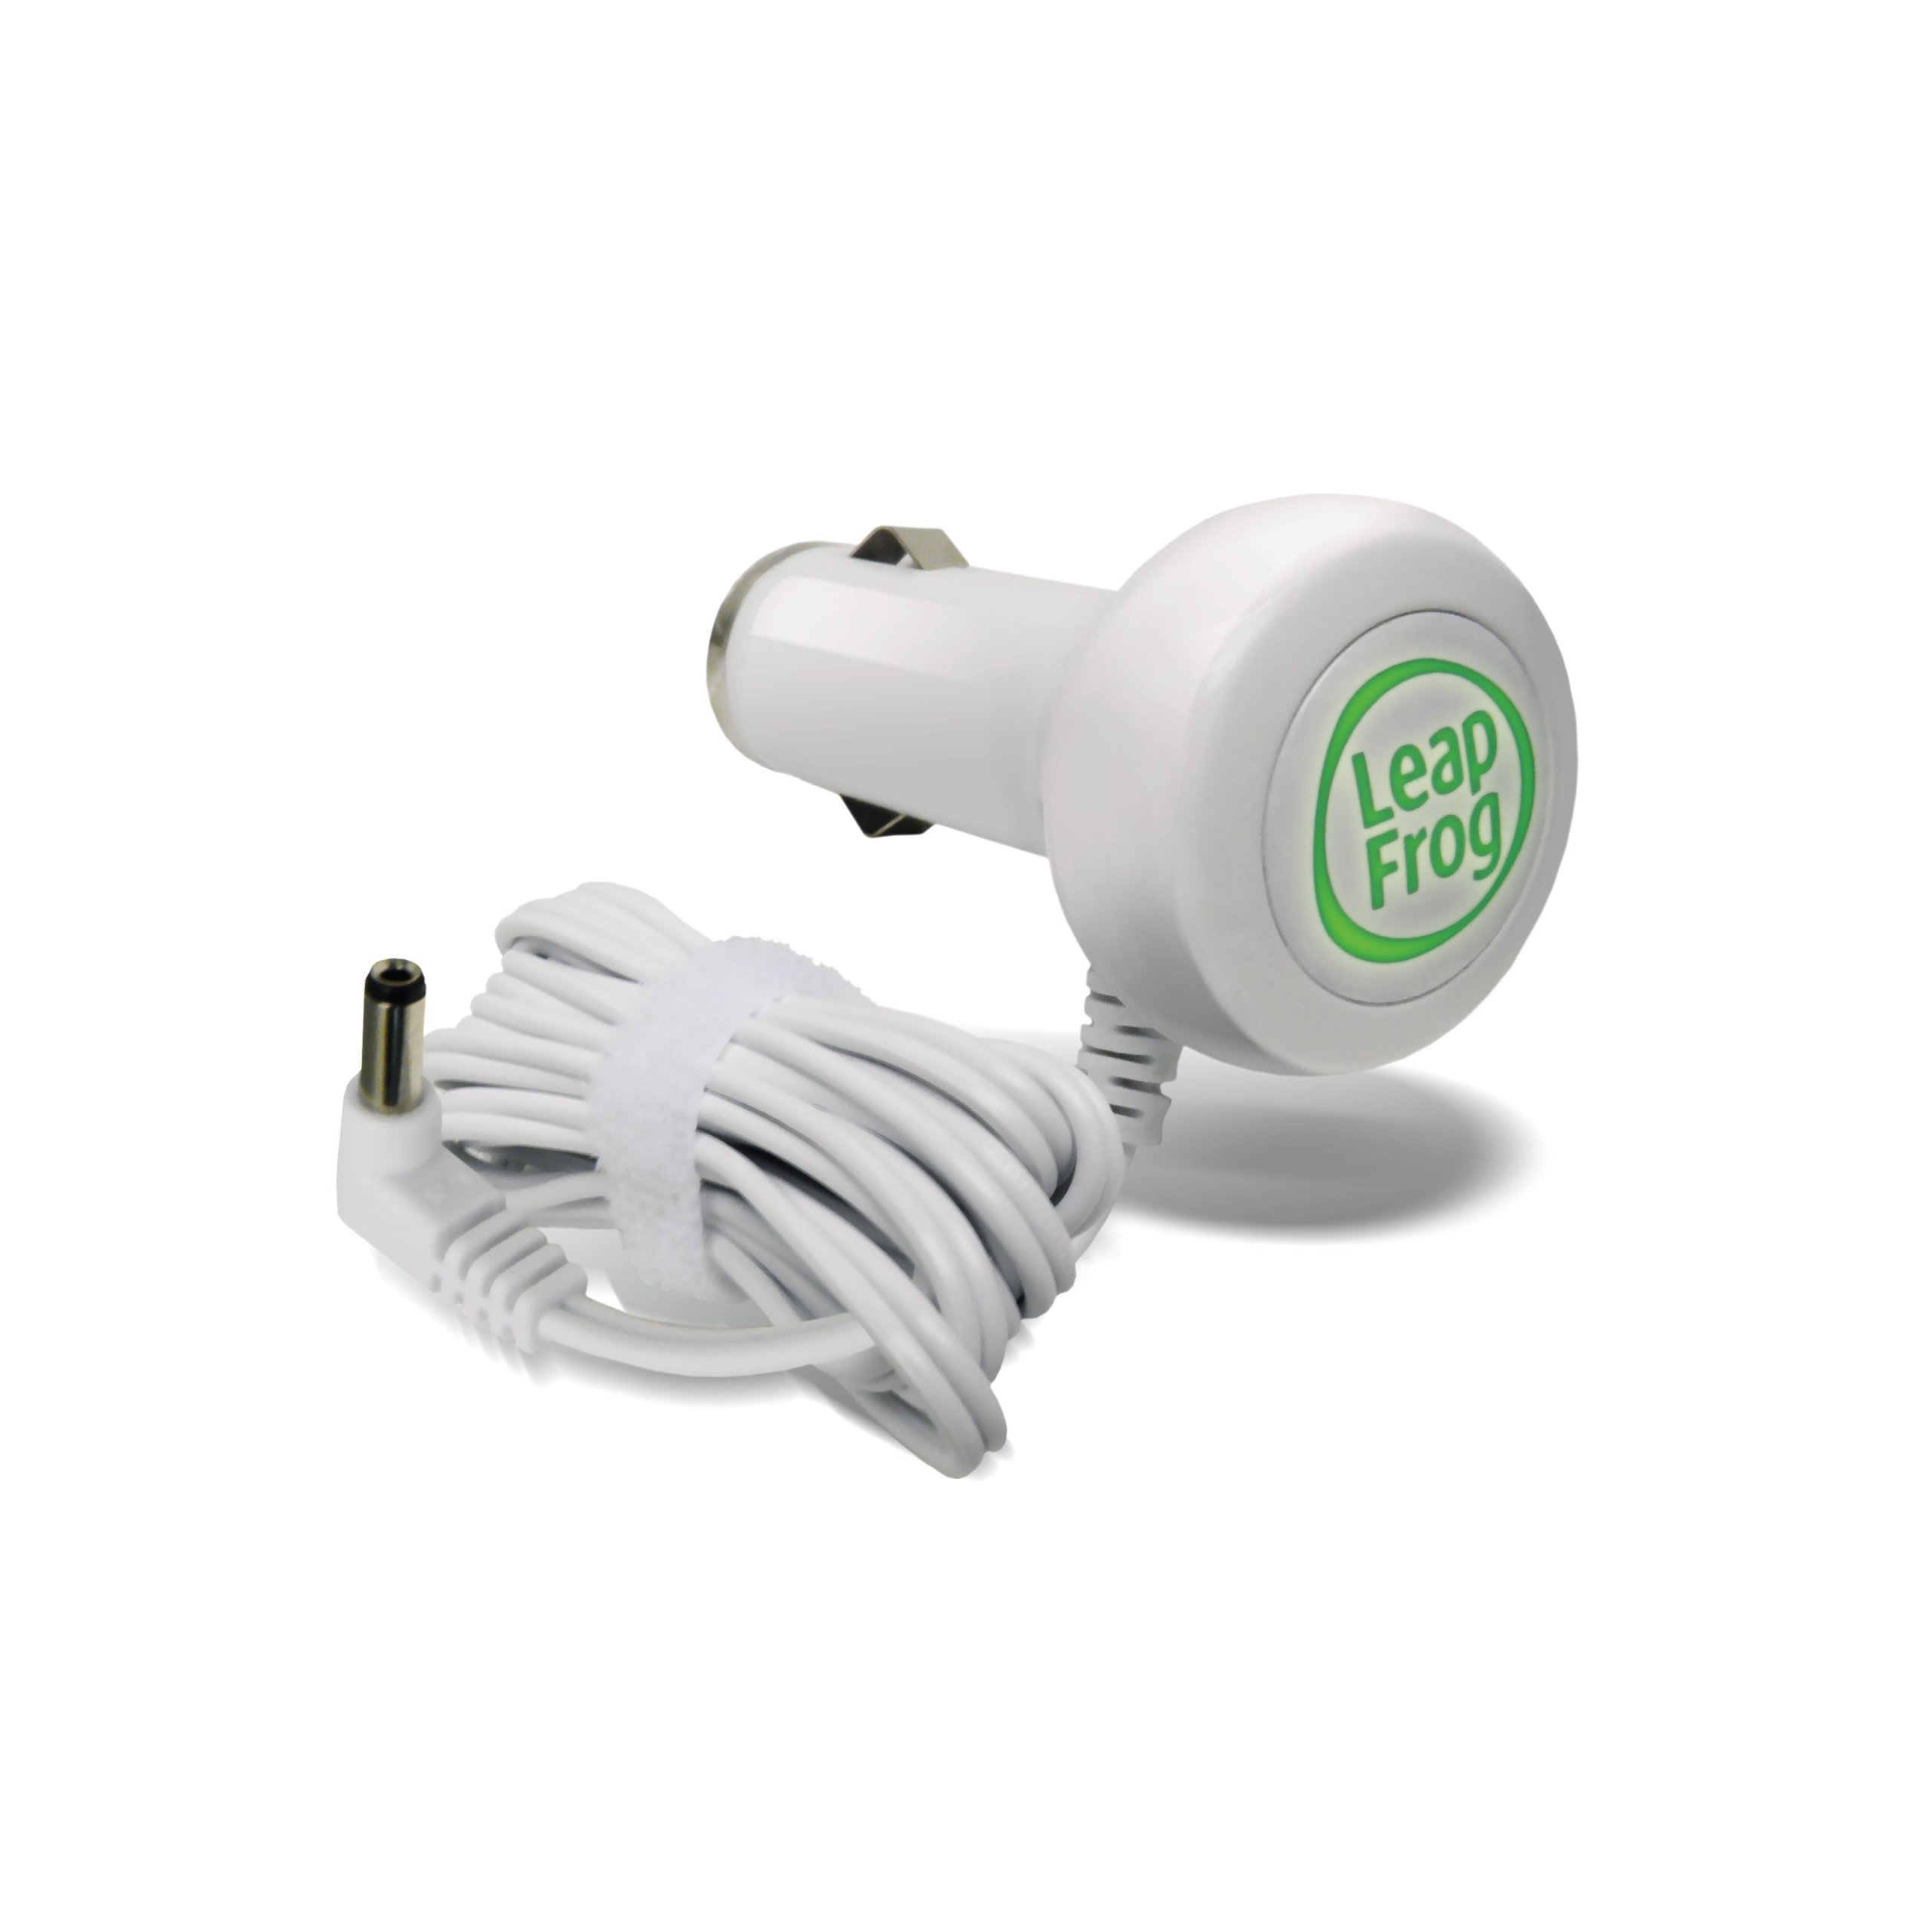 LeapFrog Car Adapter (Works with all LeapPad2 and LeapPad1 Tablets, LeapsterGS, and Leapster2) by LeapFrog